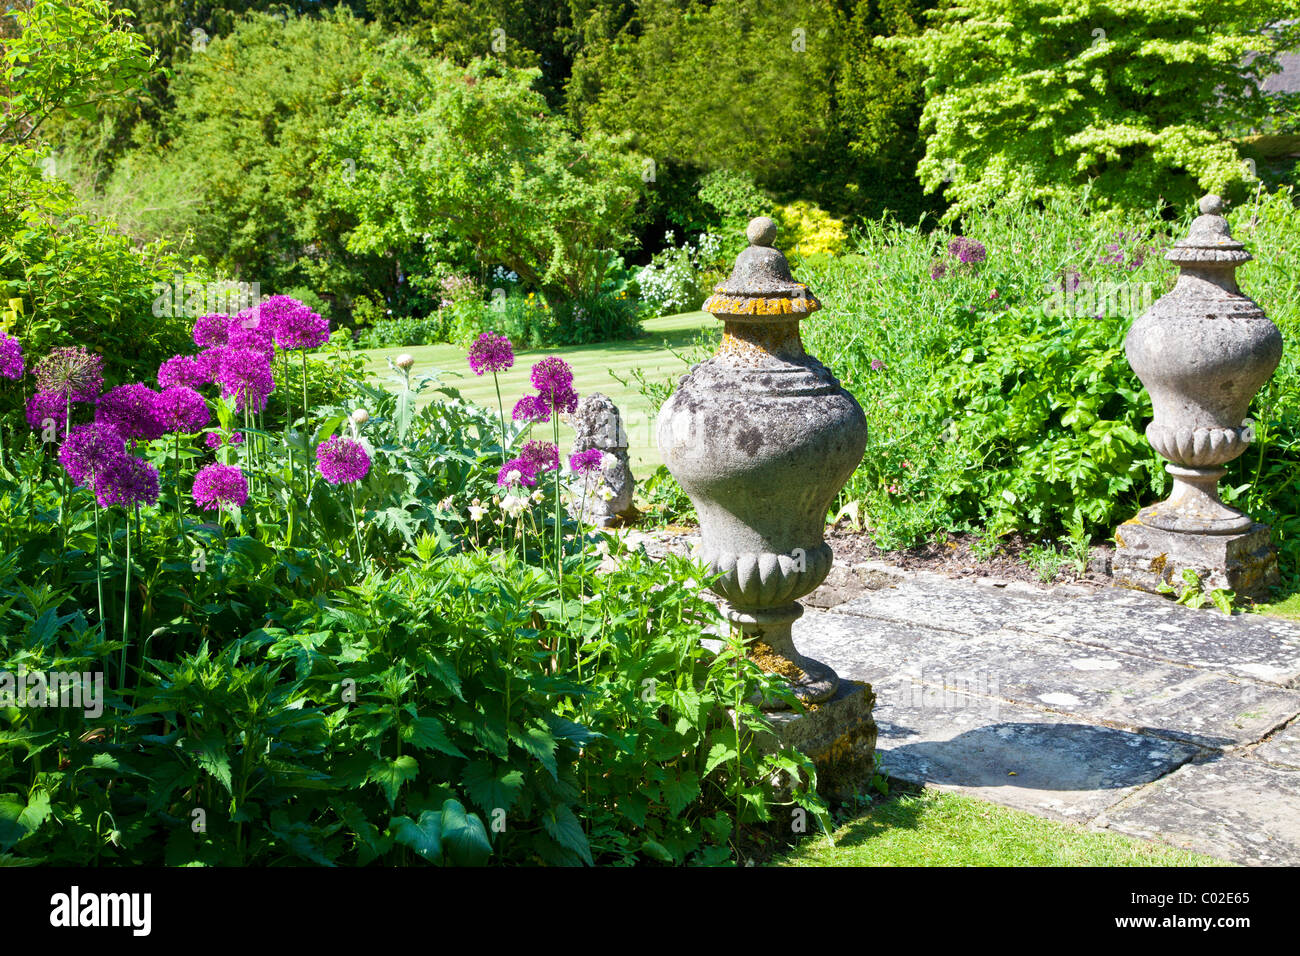 Stock Photo   Stone Garden Ornaments And Purple Allium Or Onion Flowers  Overlooking A Lawn In An English Country Garden In Summer